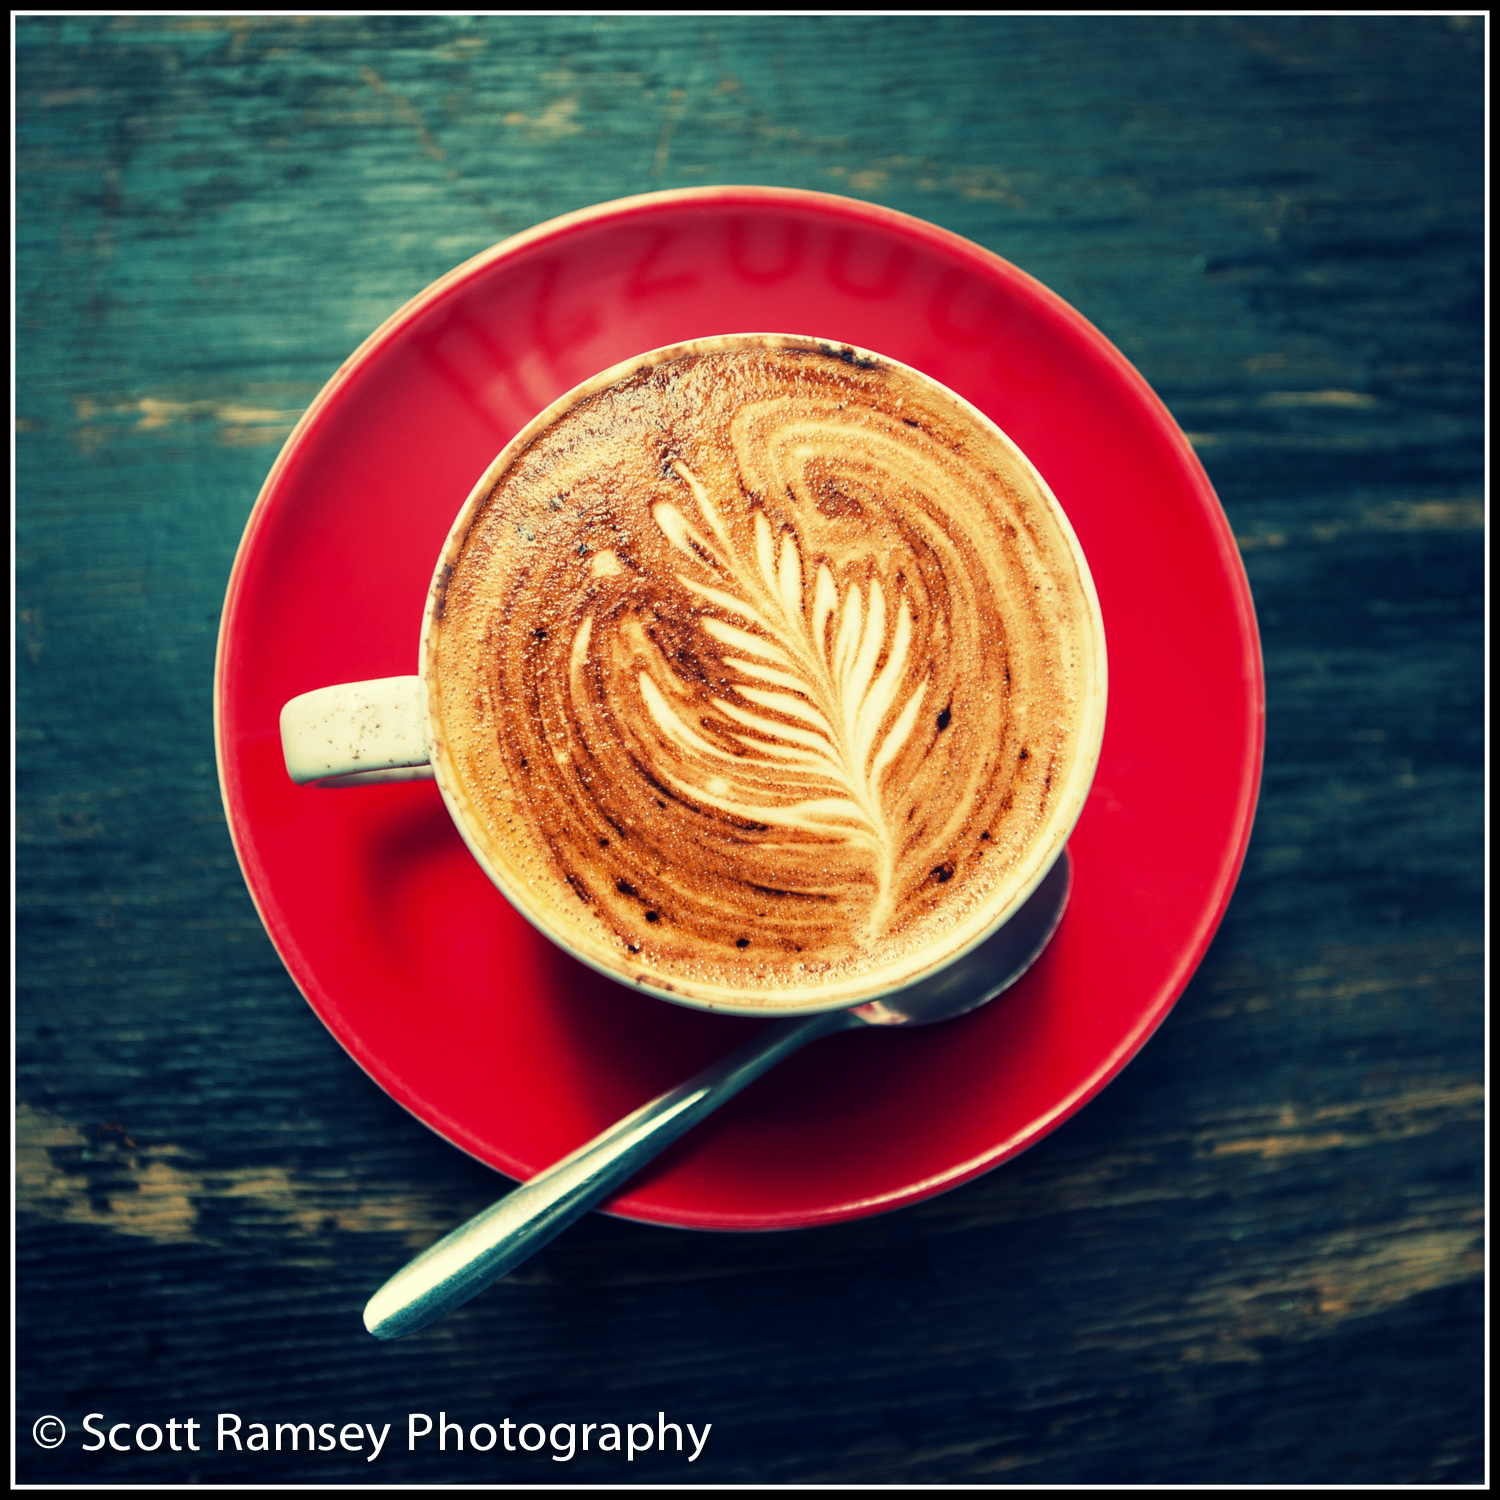 Sometimes all you need is a great cup of coffee to find inspiration.